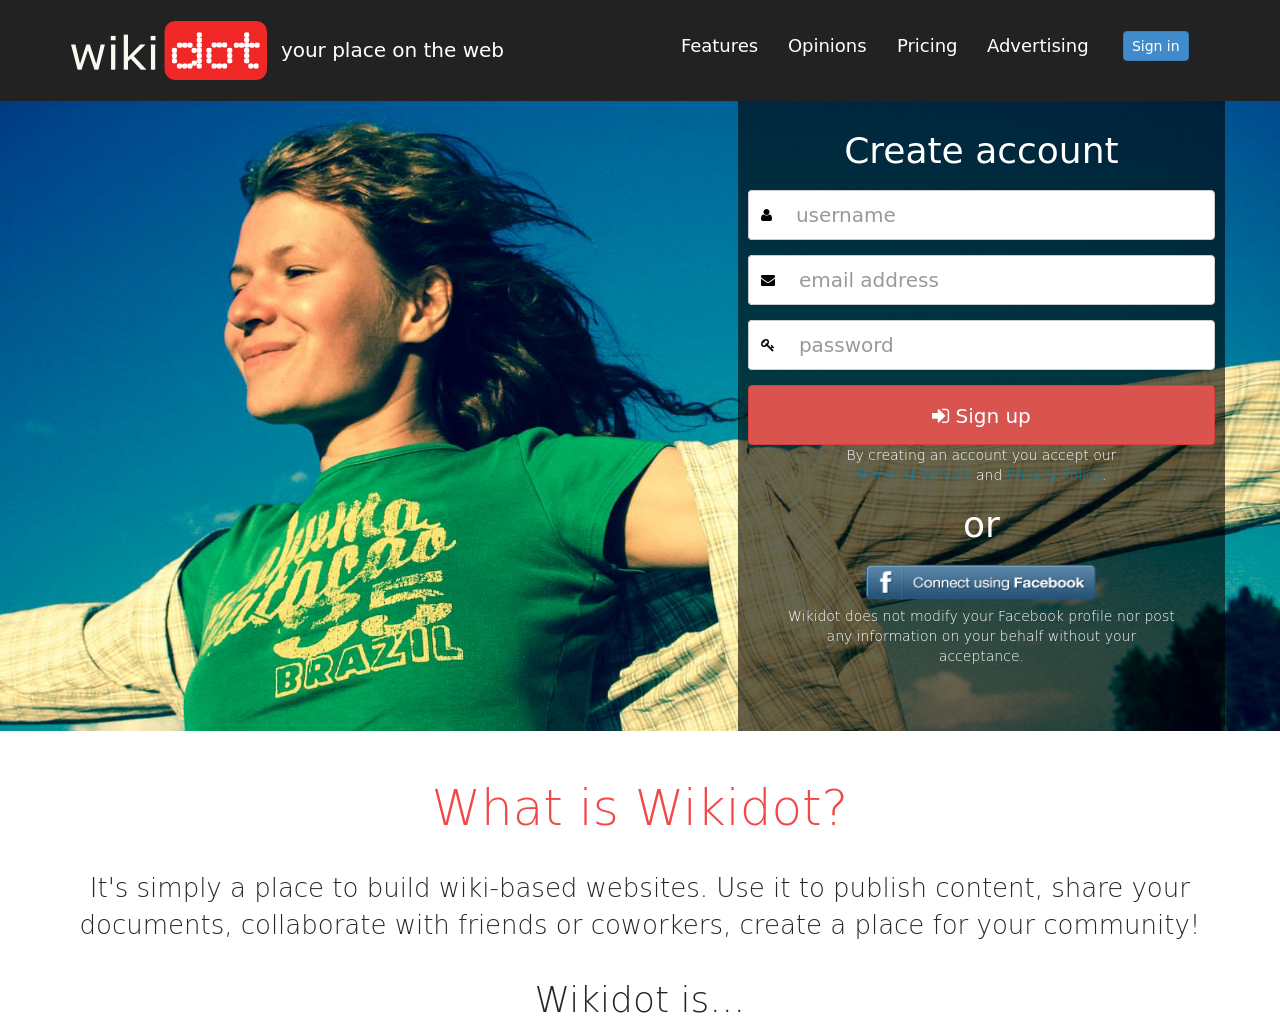 wikidot-Advertising-Reviews-Pricing